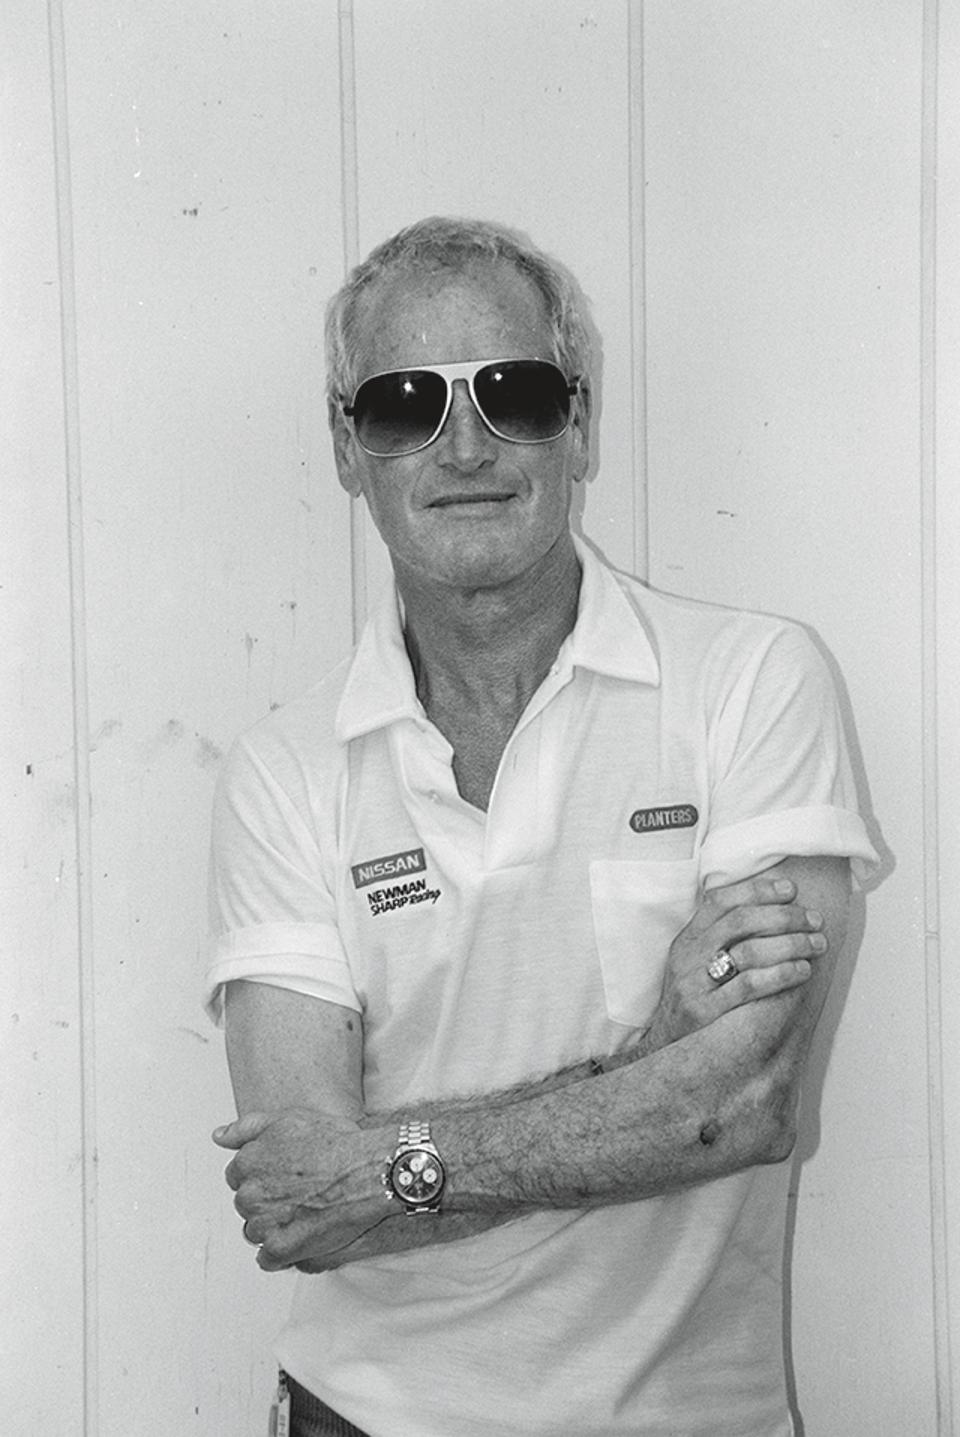 Paul Newman wearing his Rolex Daytona Big Red, coming up for sale at a Phillips auction.